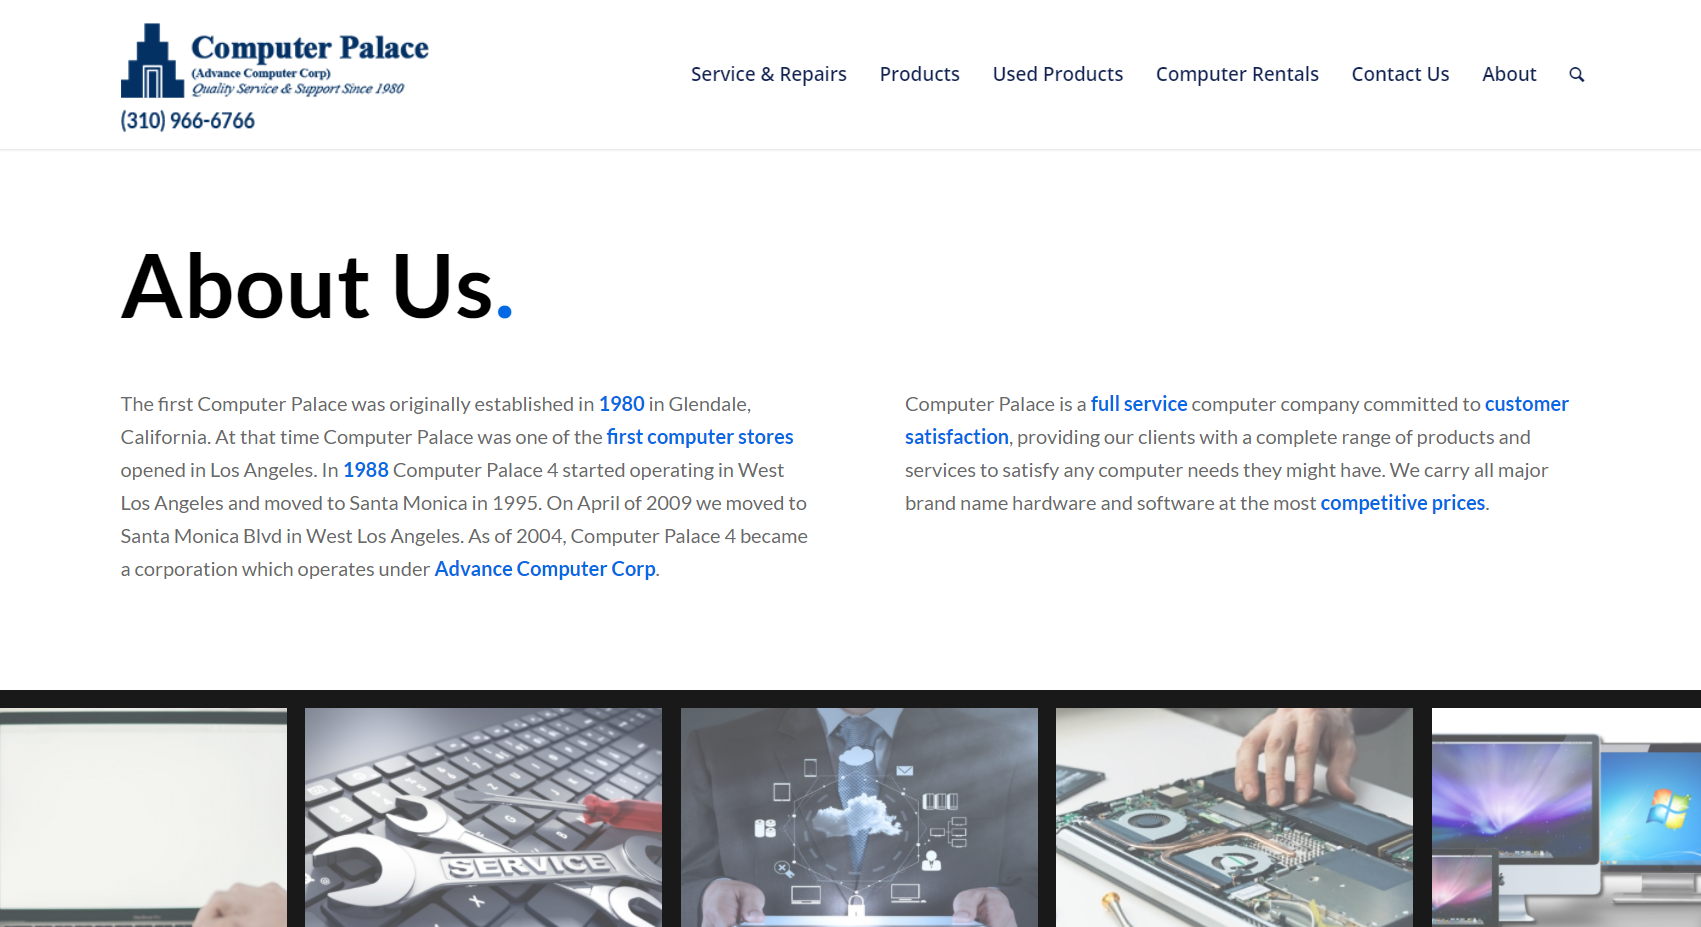 Superior Computer Parts and Service